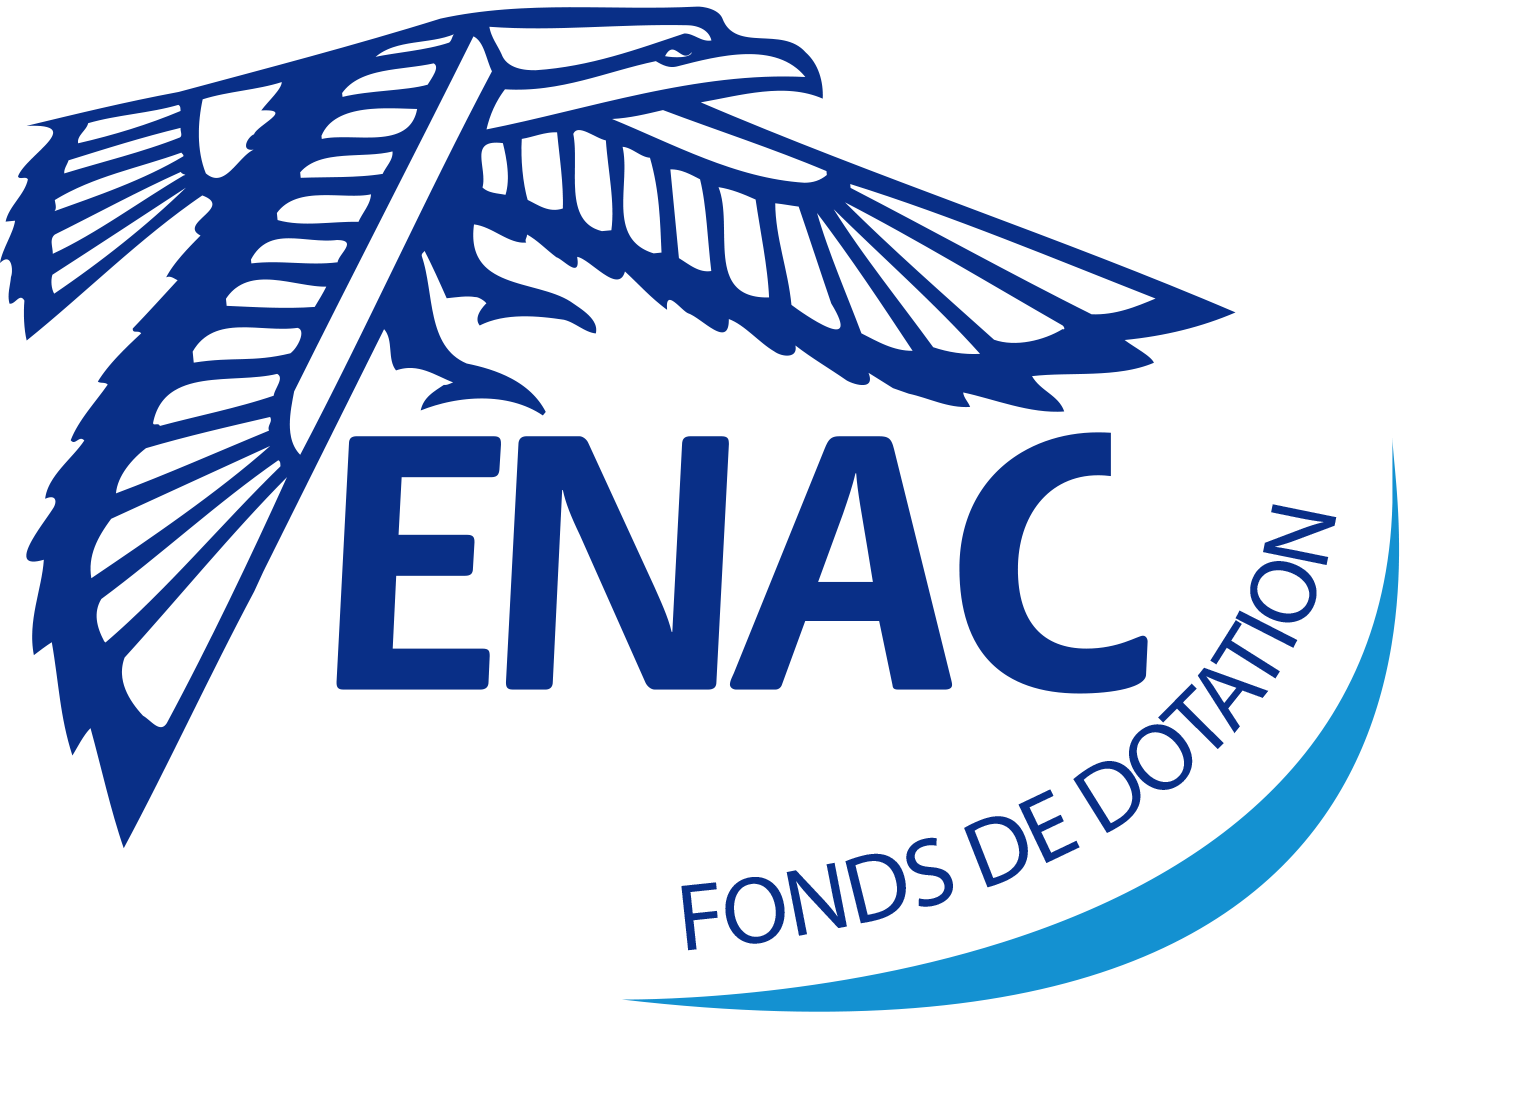 Logo Fonds de dotation ENAC